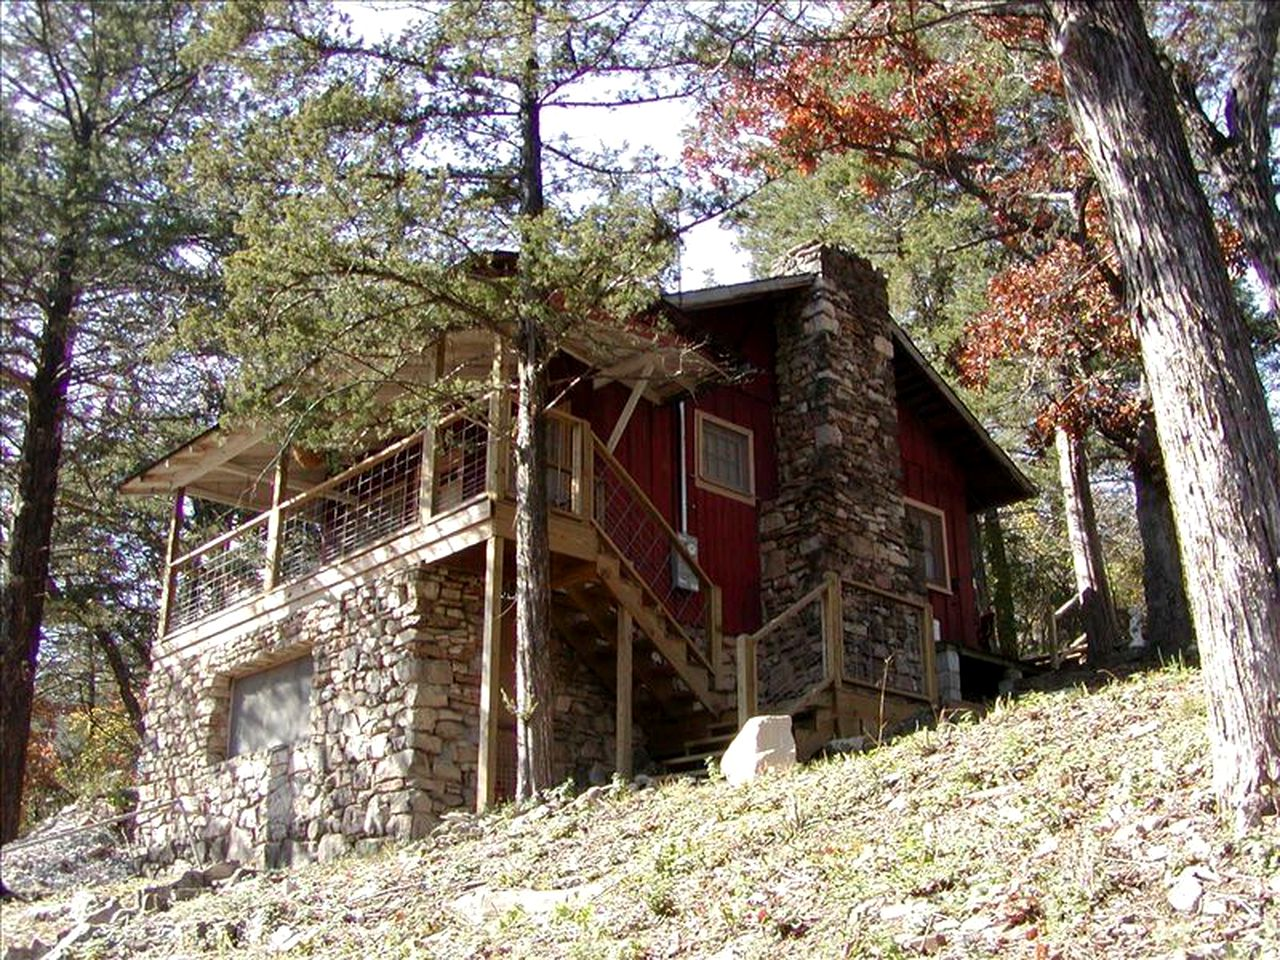 Cabins (Hollister, Missouri, United States)